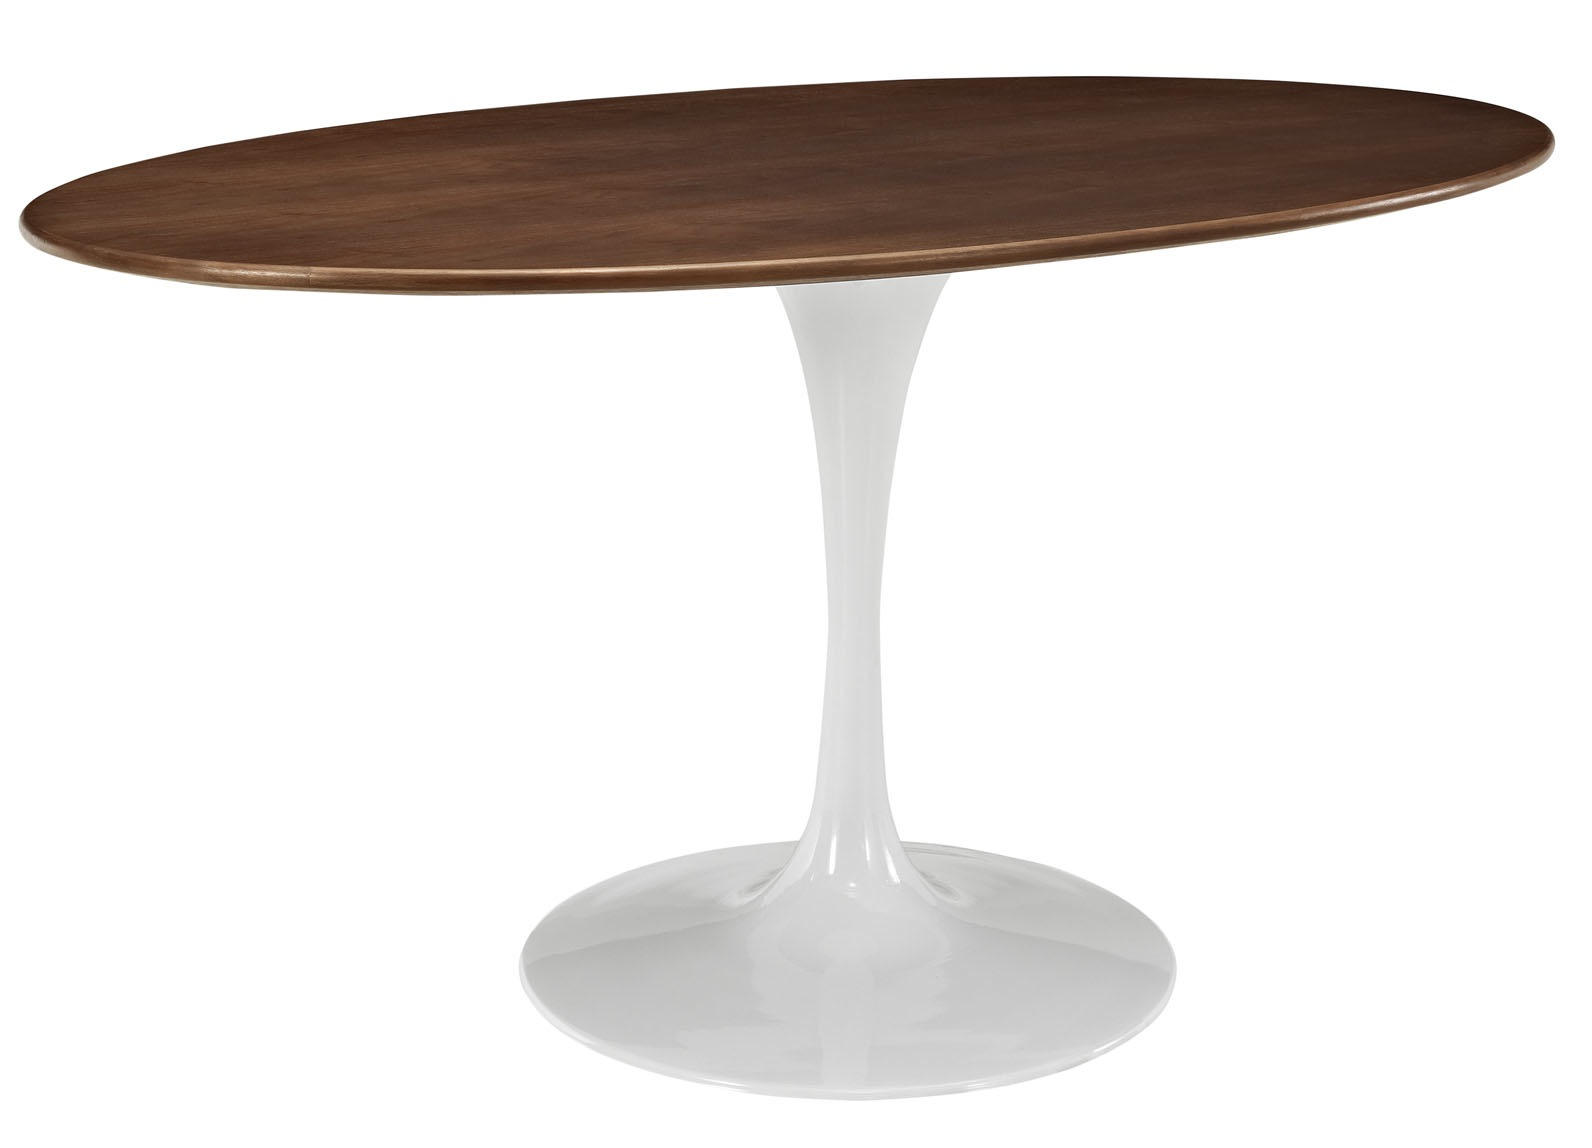 flower-dining-table-oval-walnut.jpg